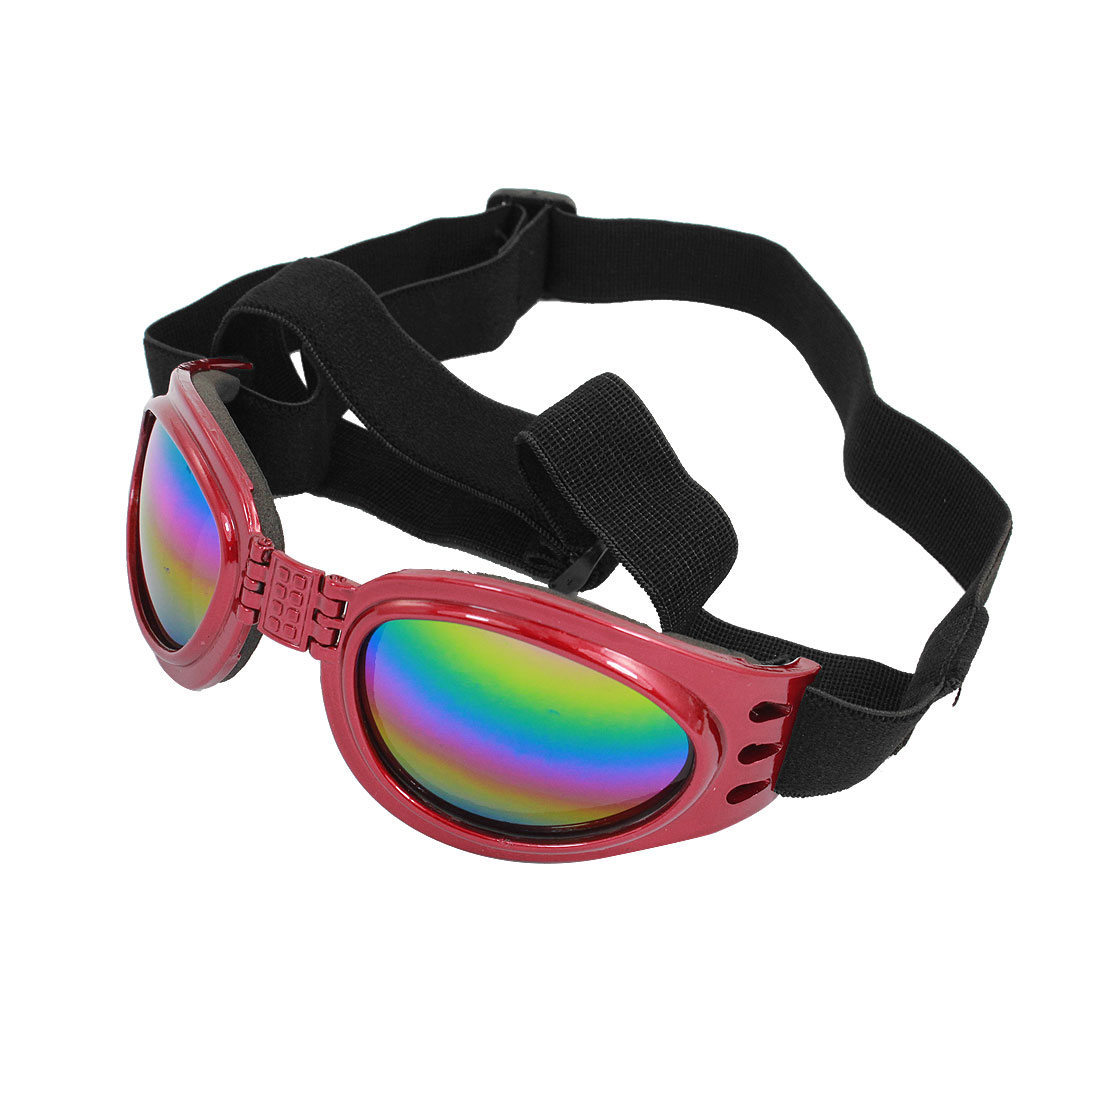 Adjustable Band Burgundy Frame Pet Dog Puppy Eye Protective Sunglasses Goggles